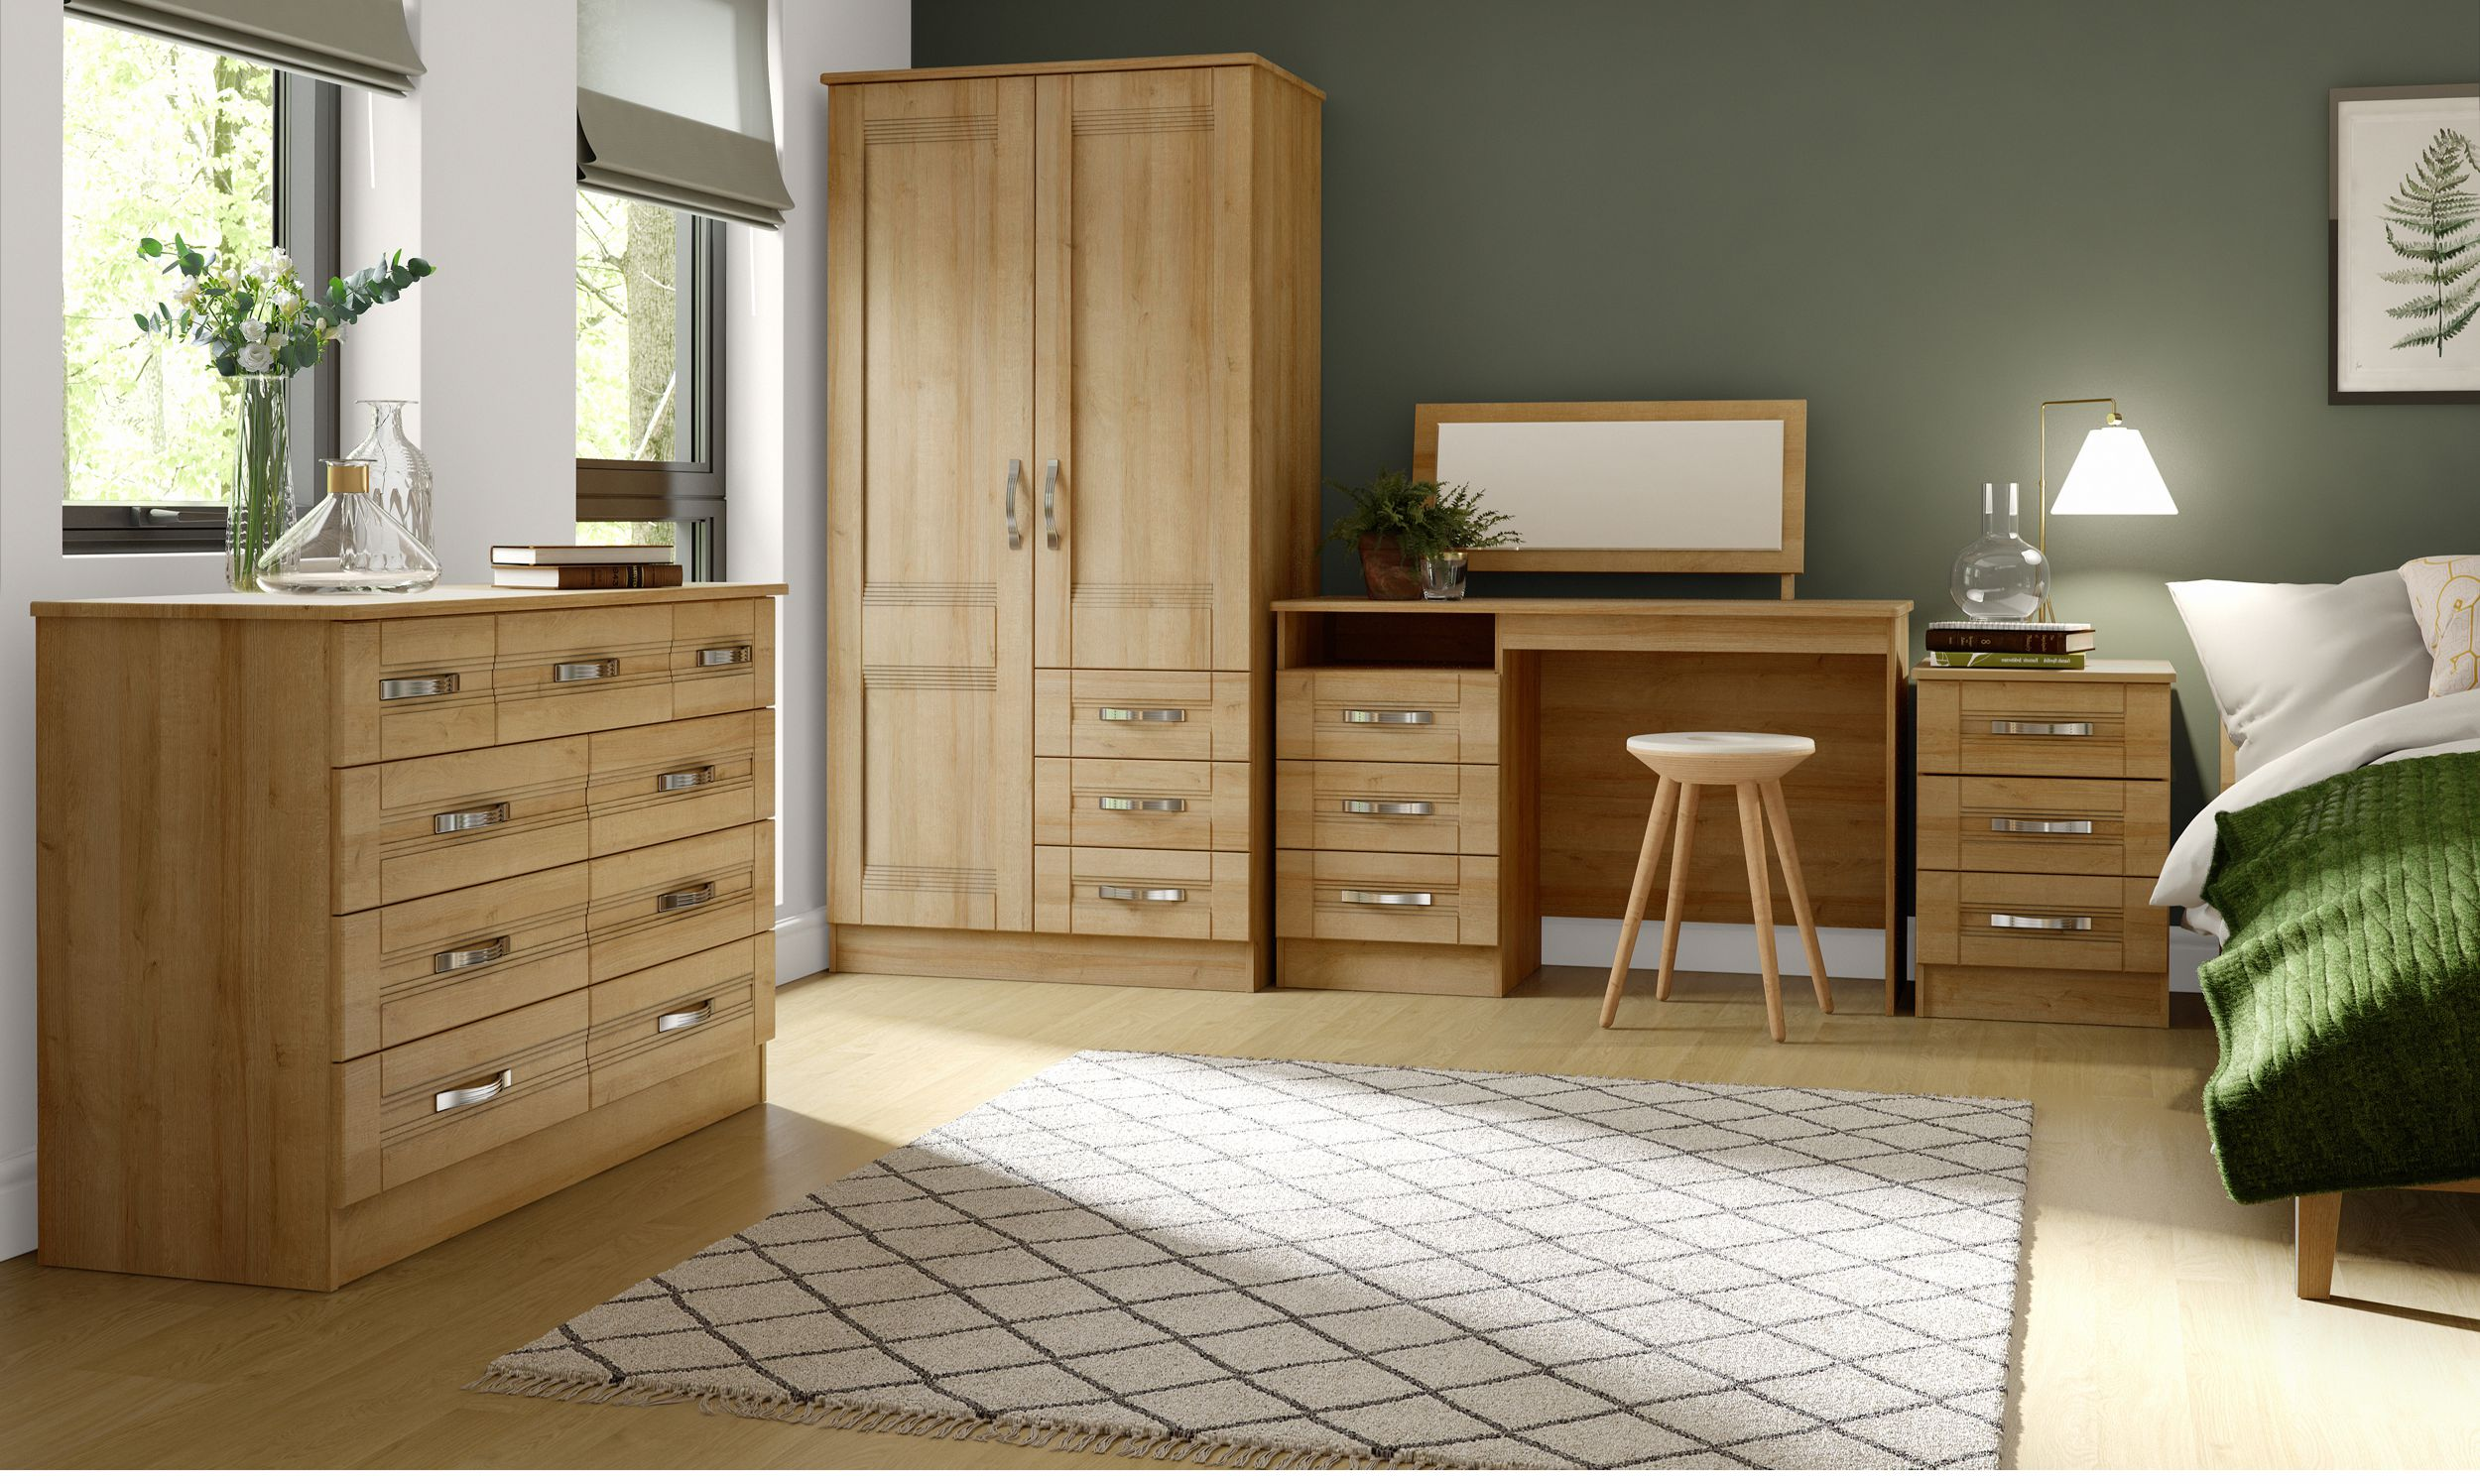 Arun Furnishers Ltd based in Littlehampton, West Sussex supply quality furniture for the home - bedroom furniture